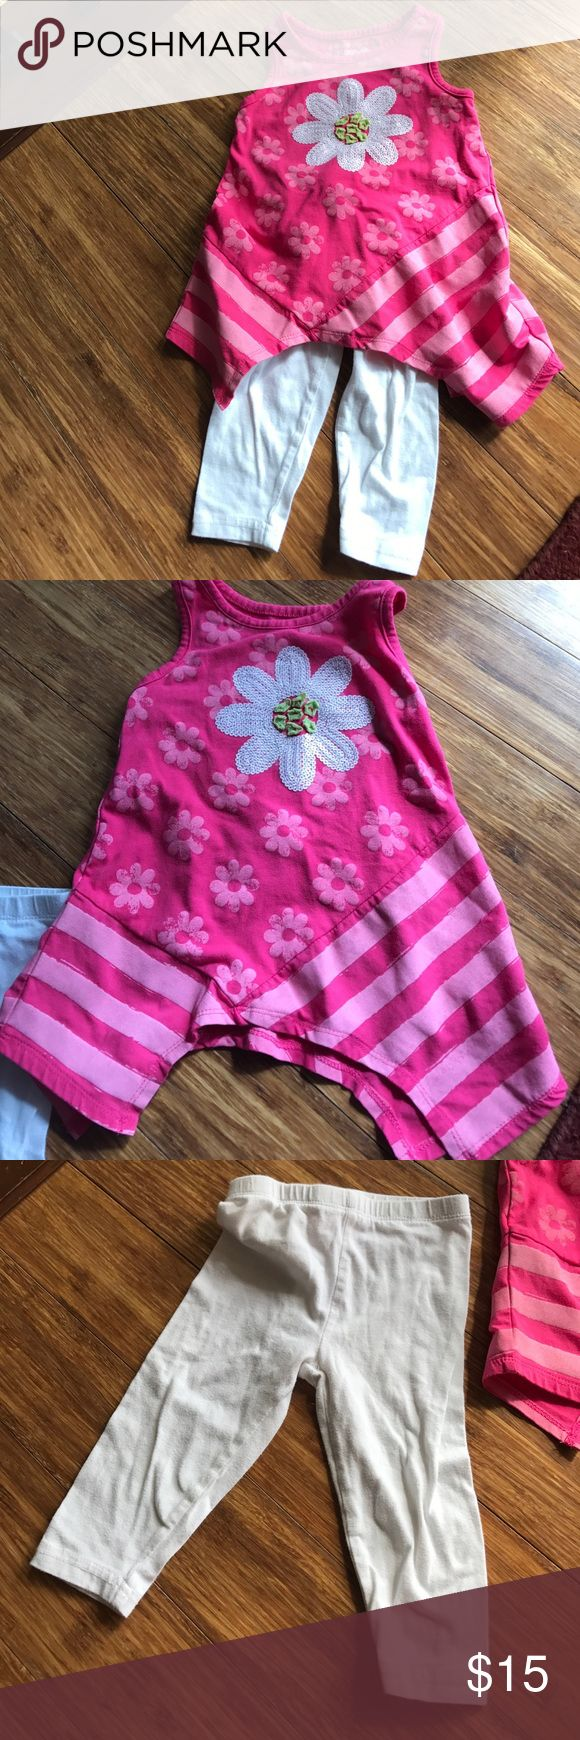 Racerback Tunic with White Leggings This adorable pink tunic and white capris outfit from Flapdoodles is comfortable and perfect for the little girl in your life! The sequined flower adds to the outfit. Only worn twice, so like new. Flapdoodles Matching Sets